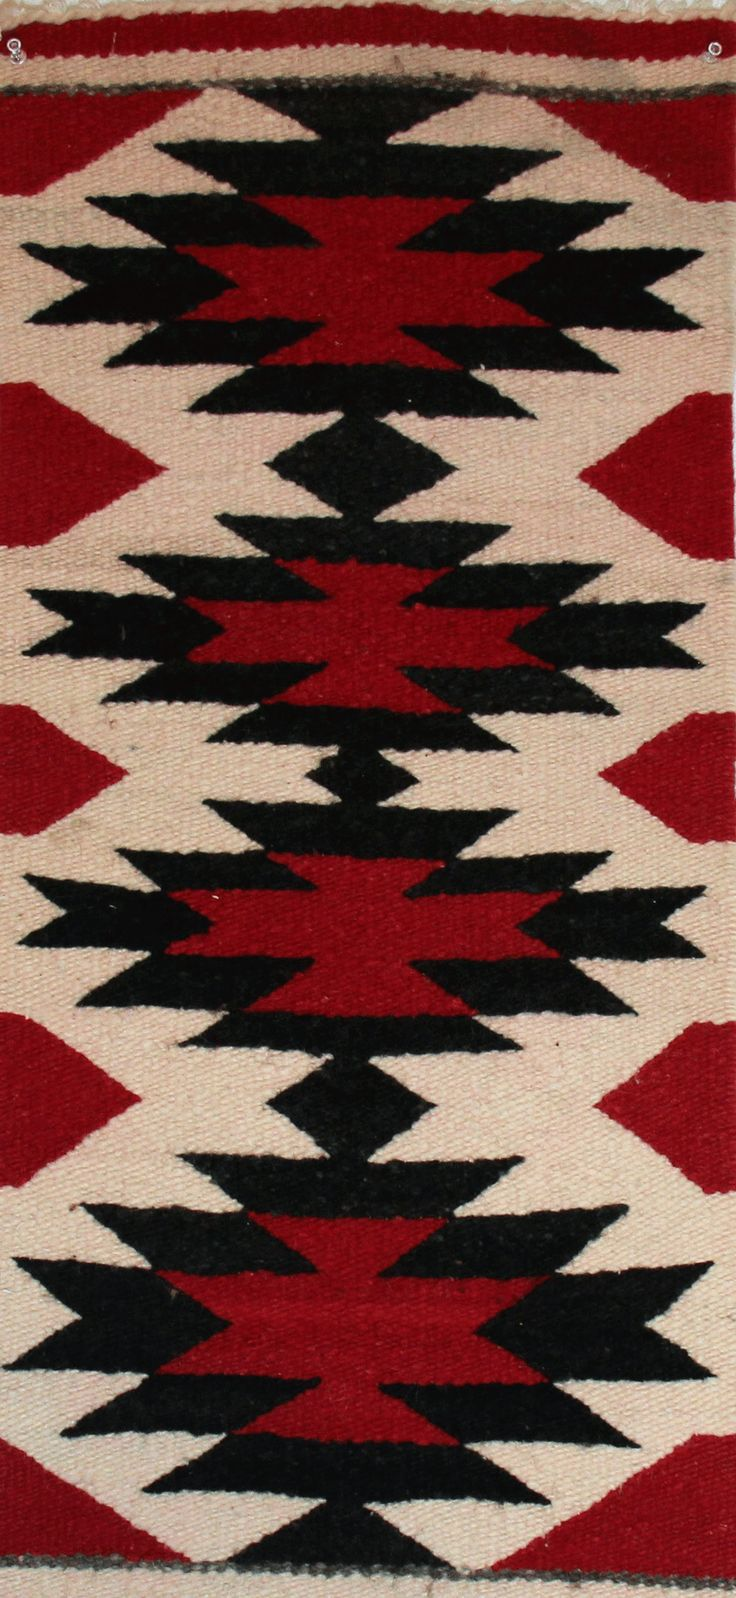 20 Best Images About Navajo Floor Covering Someday On